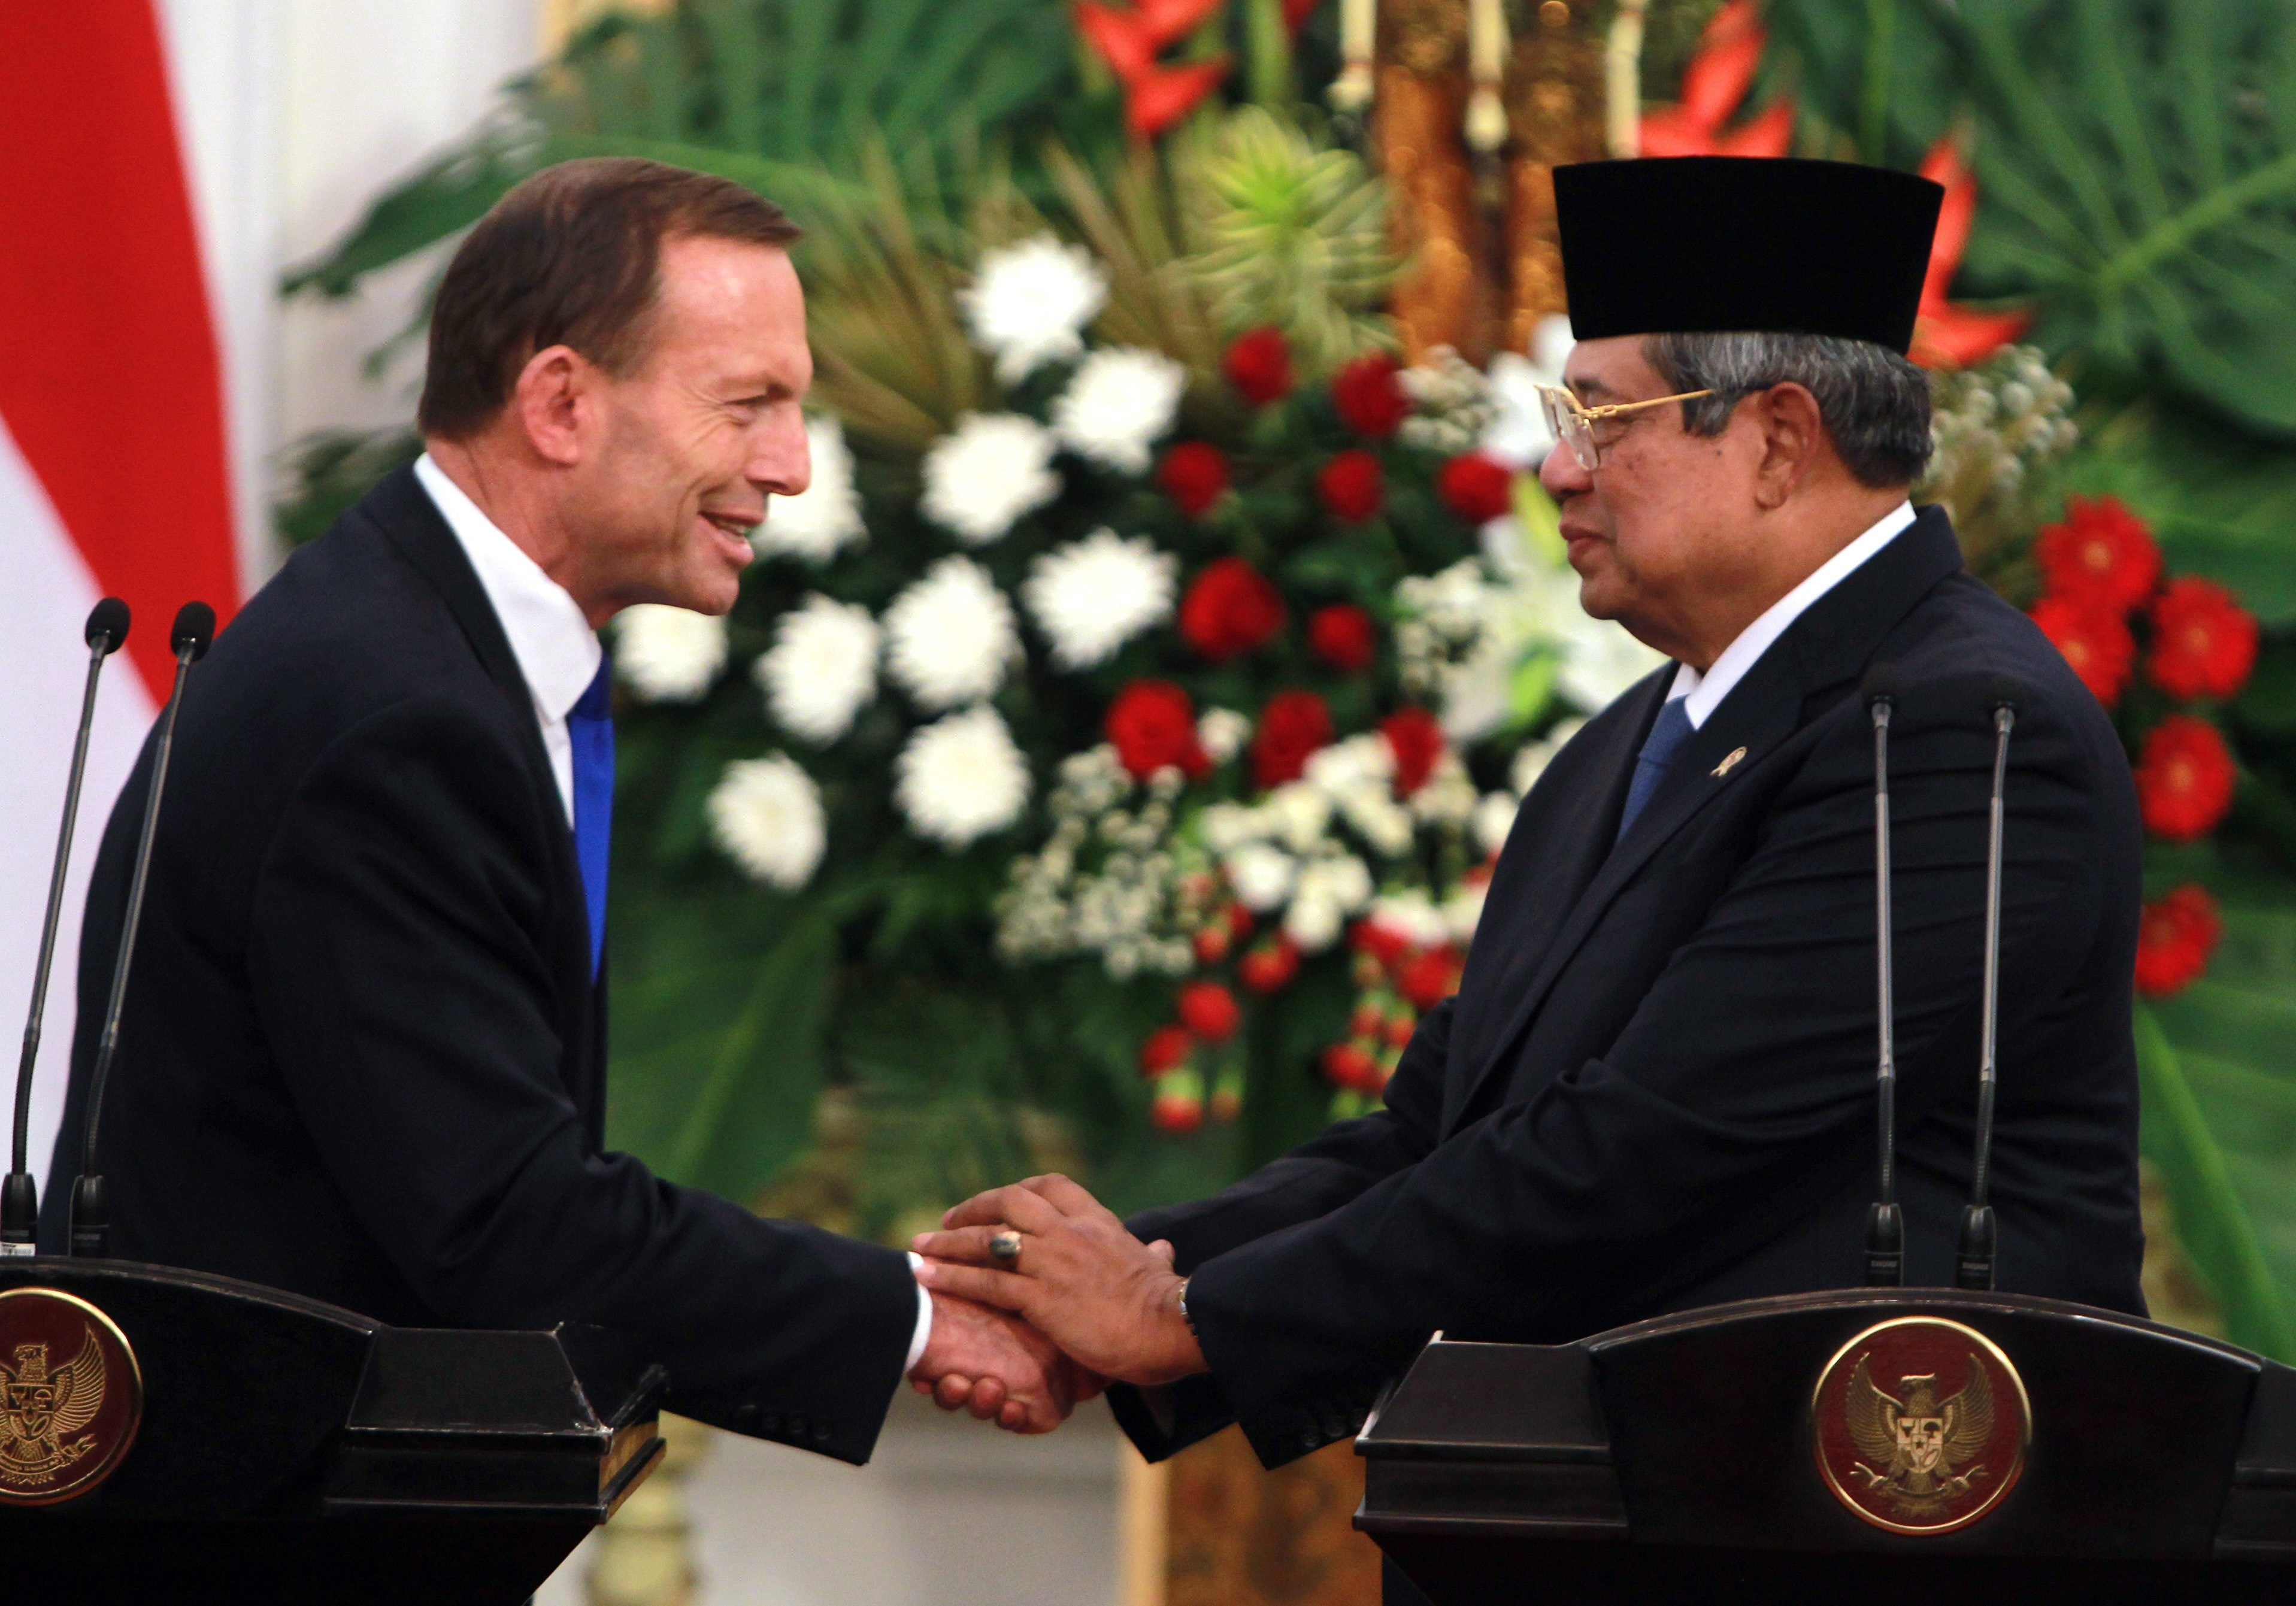 Abbott spurning Indonesia's invite confirms relationship troubles